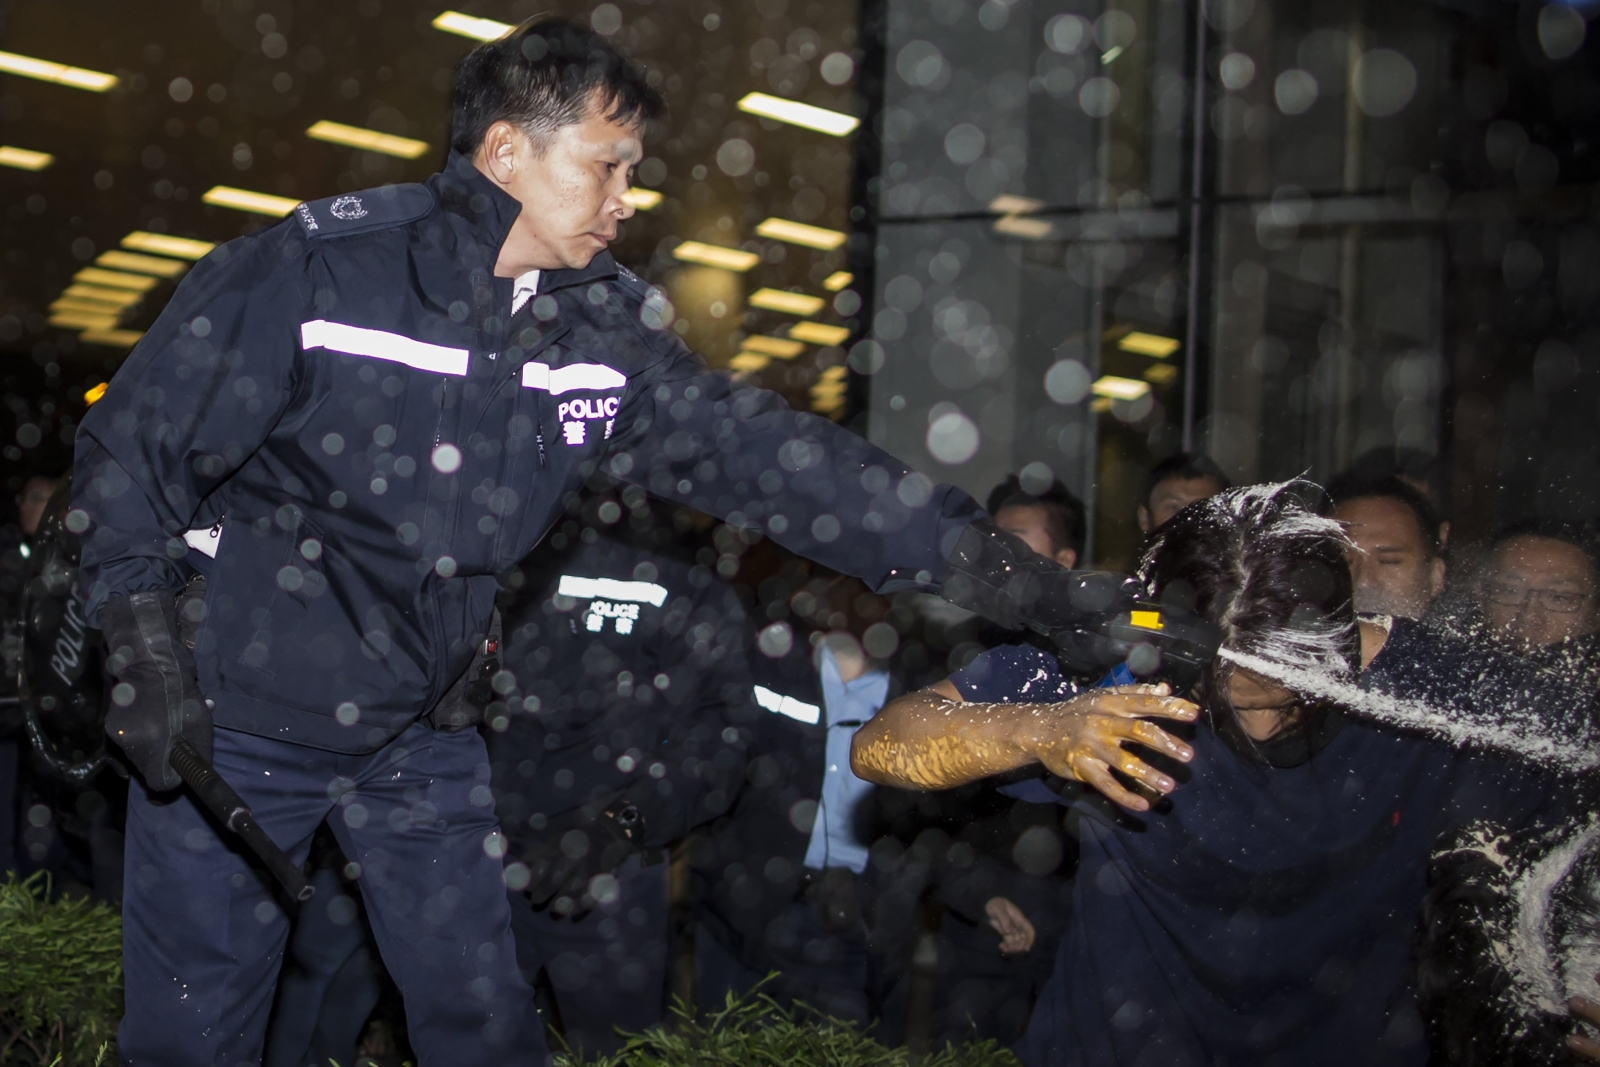 Hong Kong Unrest: Clashes Break Out Between Police and Protesters